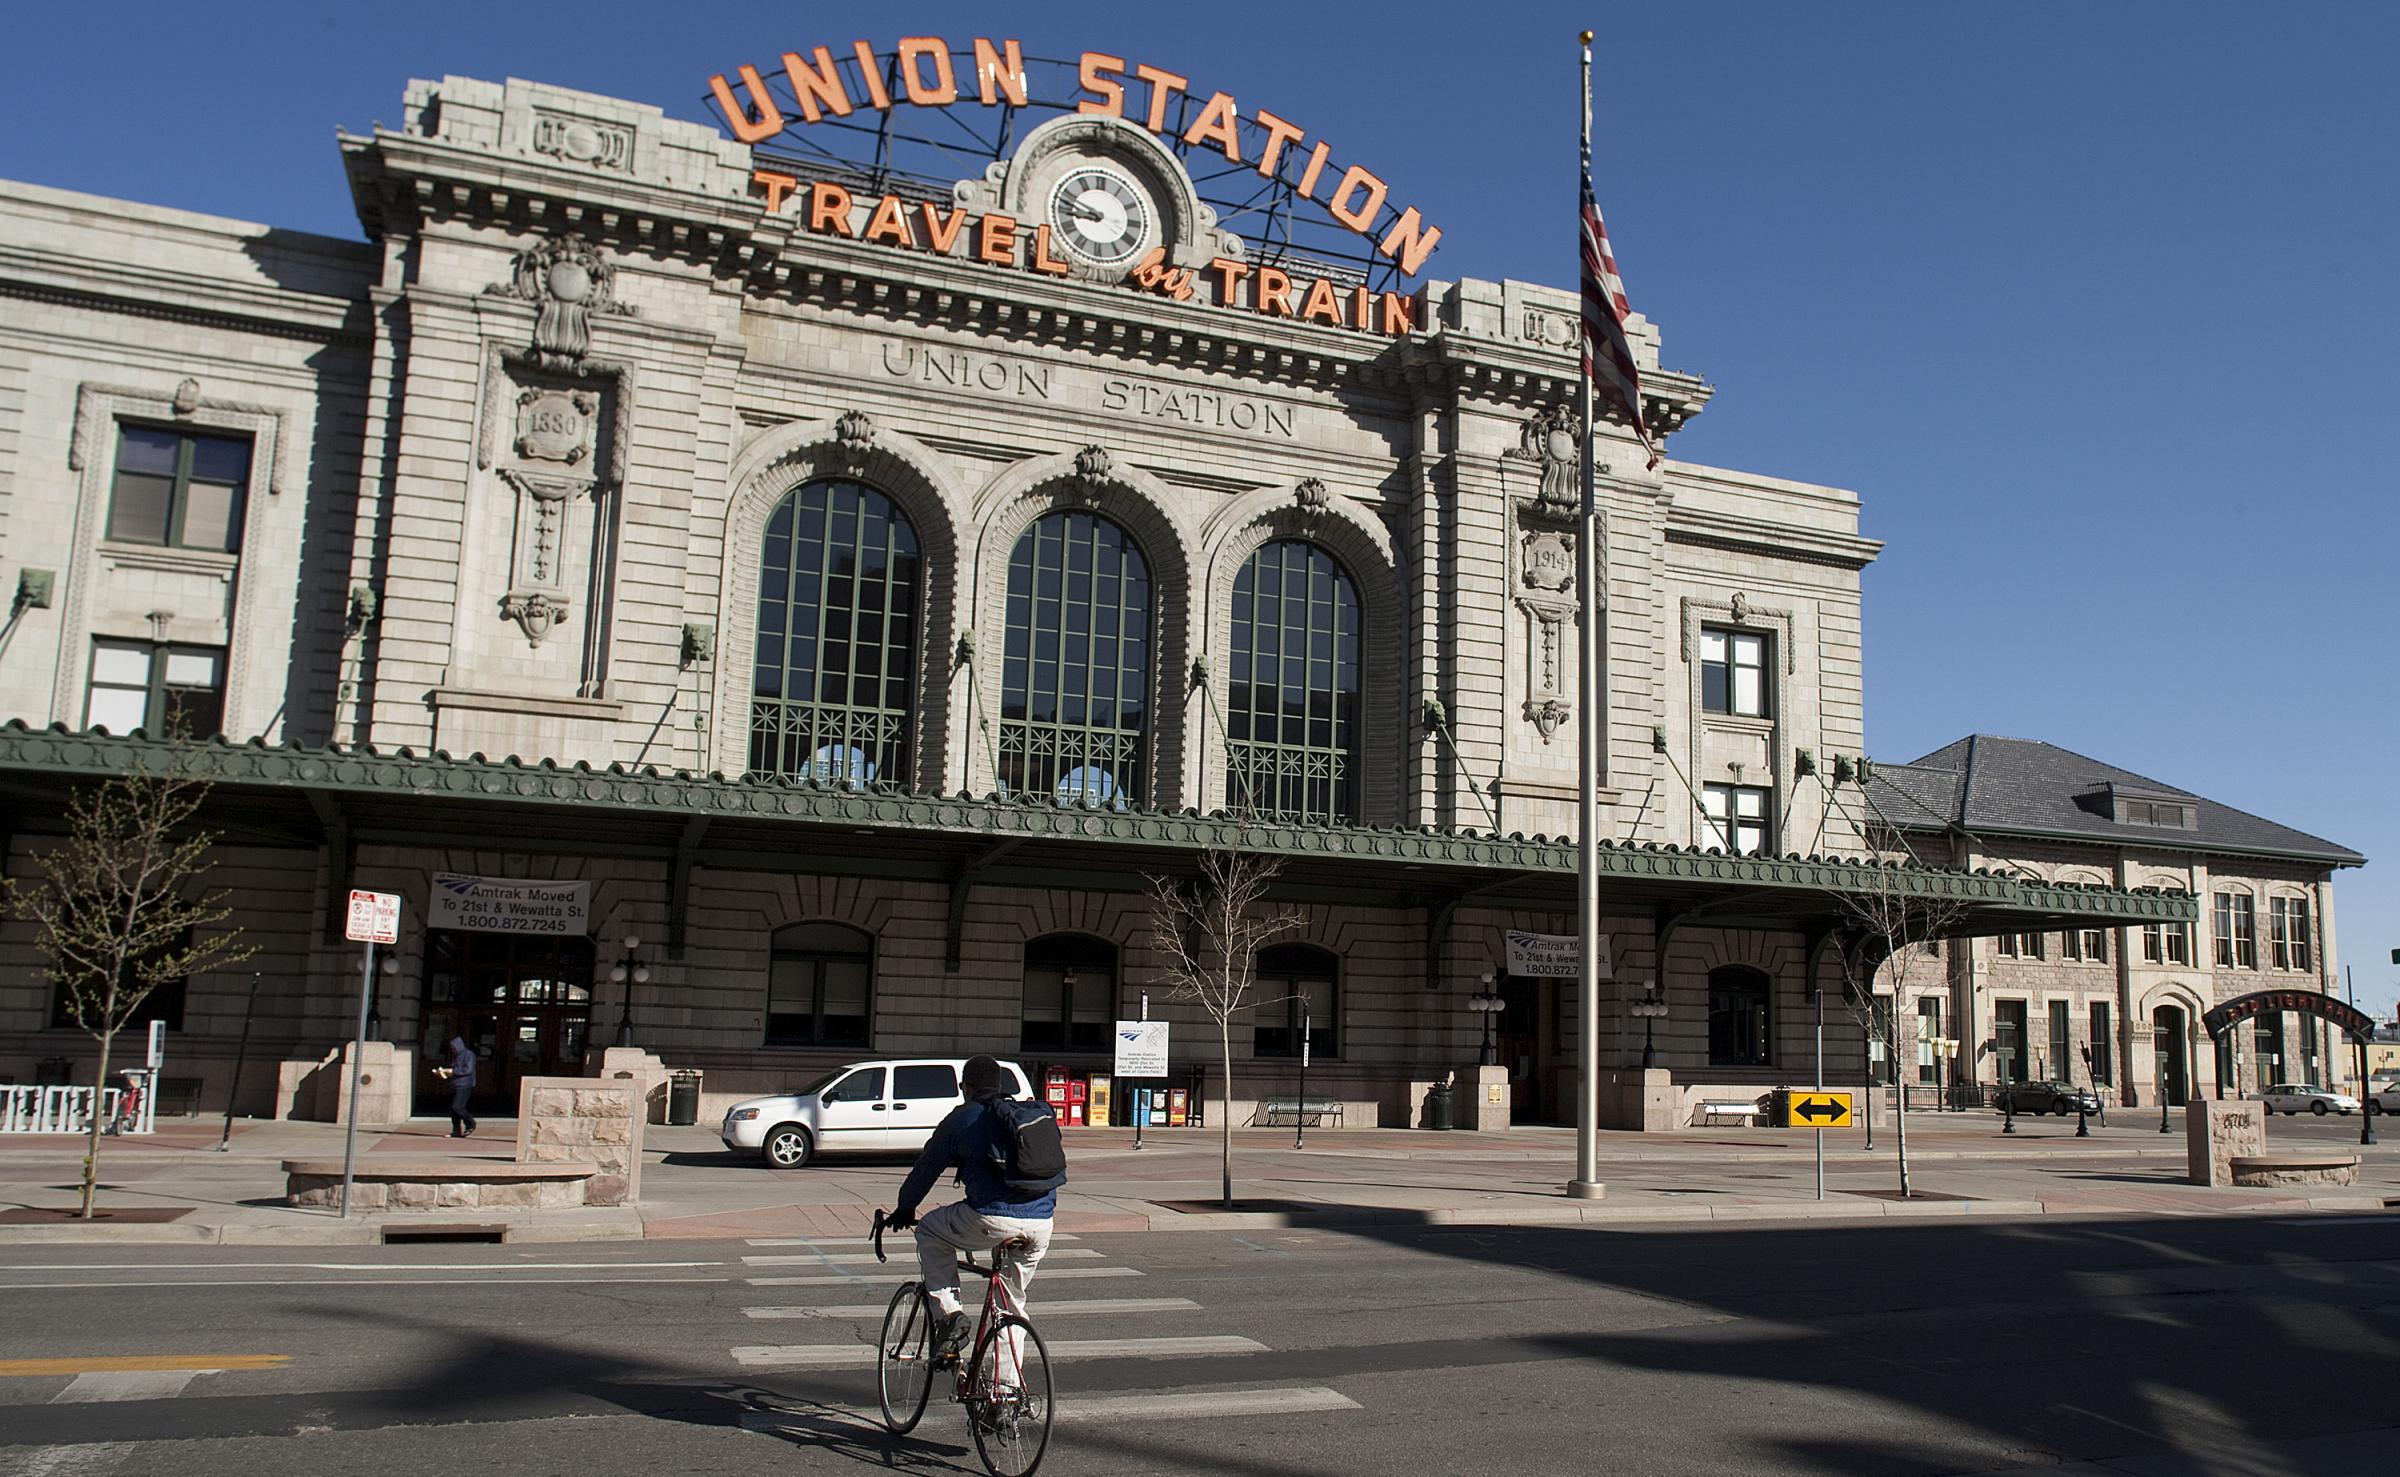 Denver S Union Station Which Was Remodeled To Include Restaurants And A Hotel Reopened Last Month